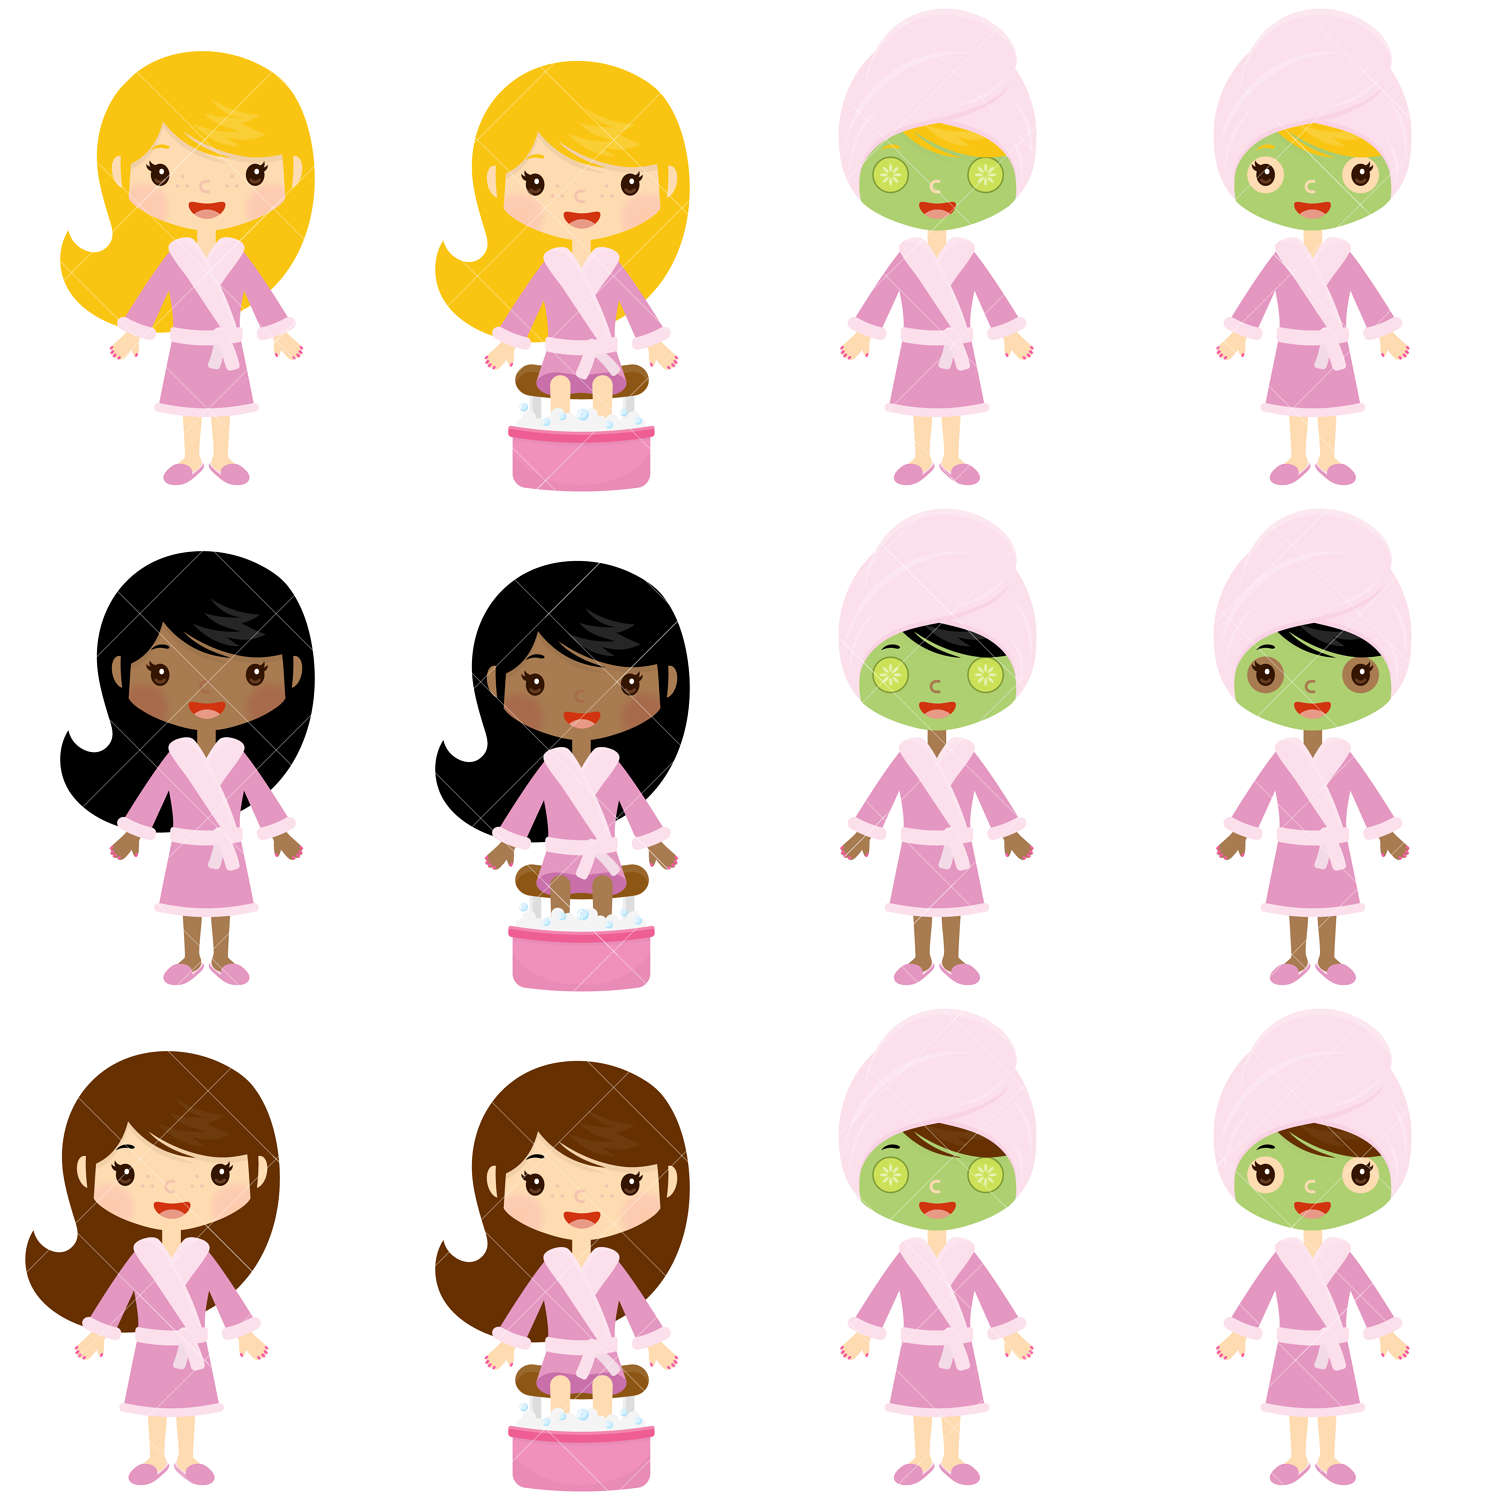 spa girls clipart spa party clip art from clipartisan on etsy studio rh etsystudio com spa clipart free spa clip art images